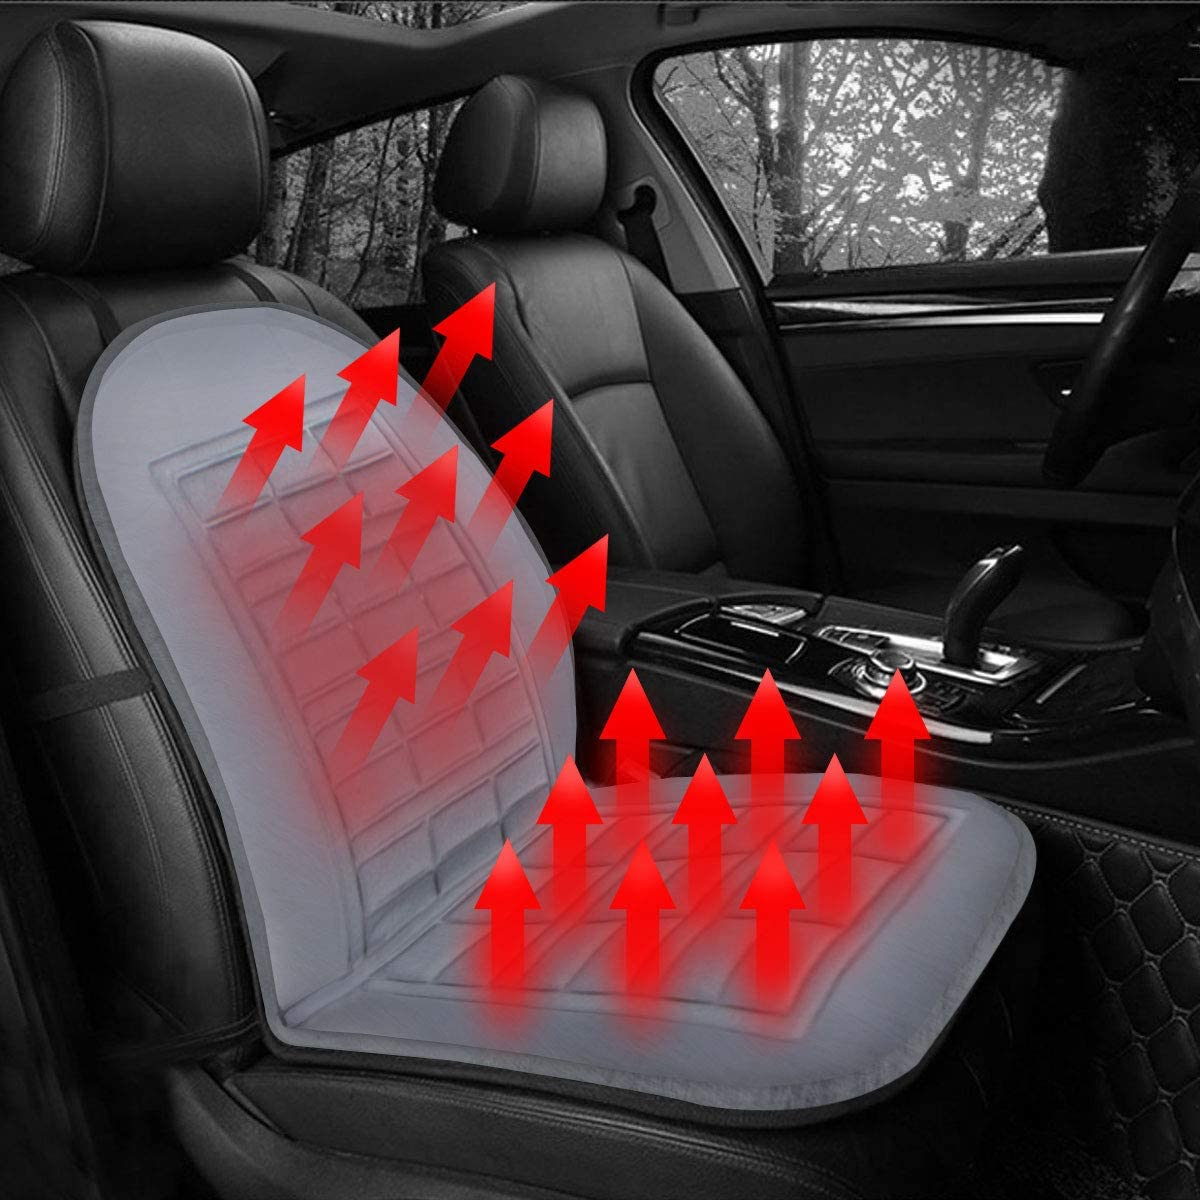 Amazon.com: Jonathan-Shop - 12V Car Styling Front Seat Electric Heater  Heated Pad Cushion Winter Warmer Pad Cover Heating Auto Single: Home  Improvement